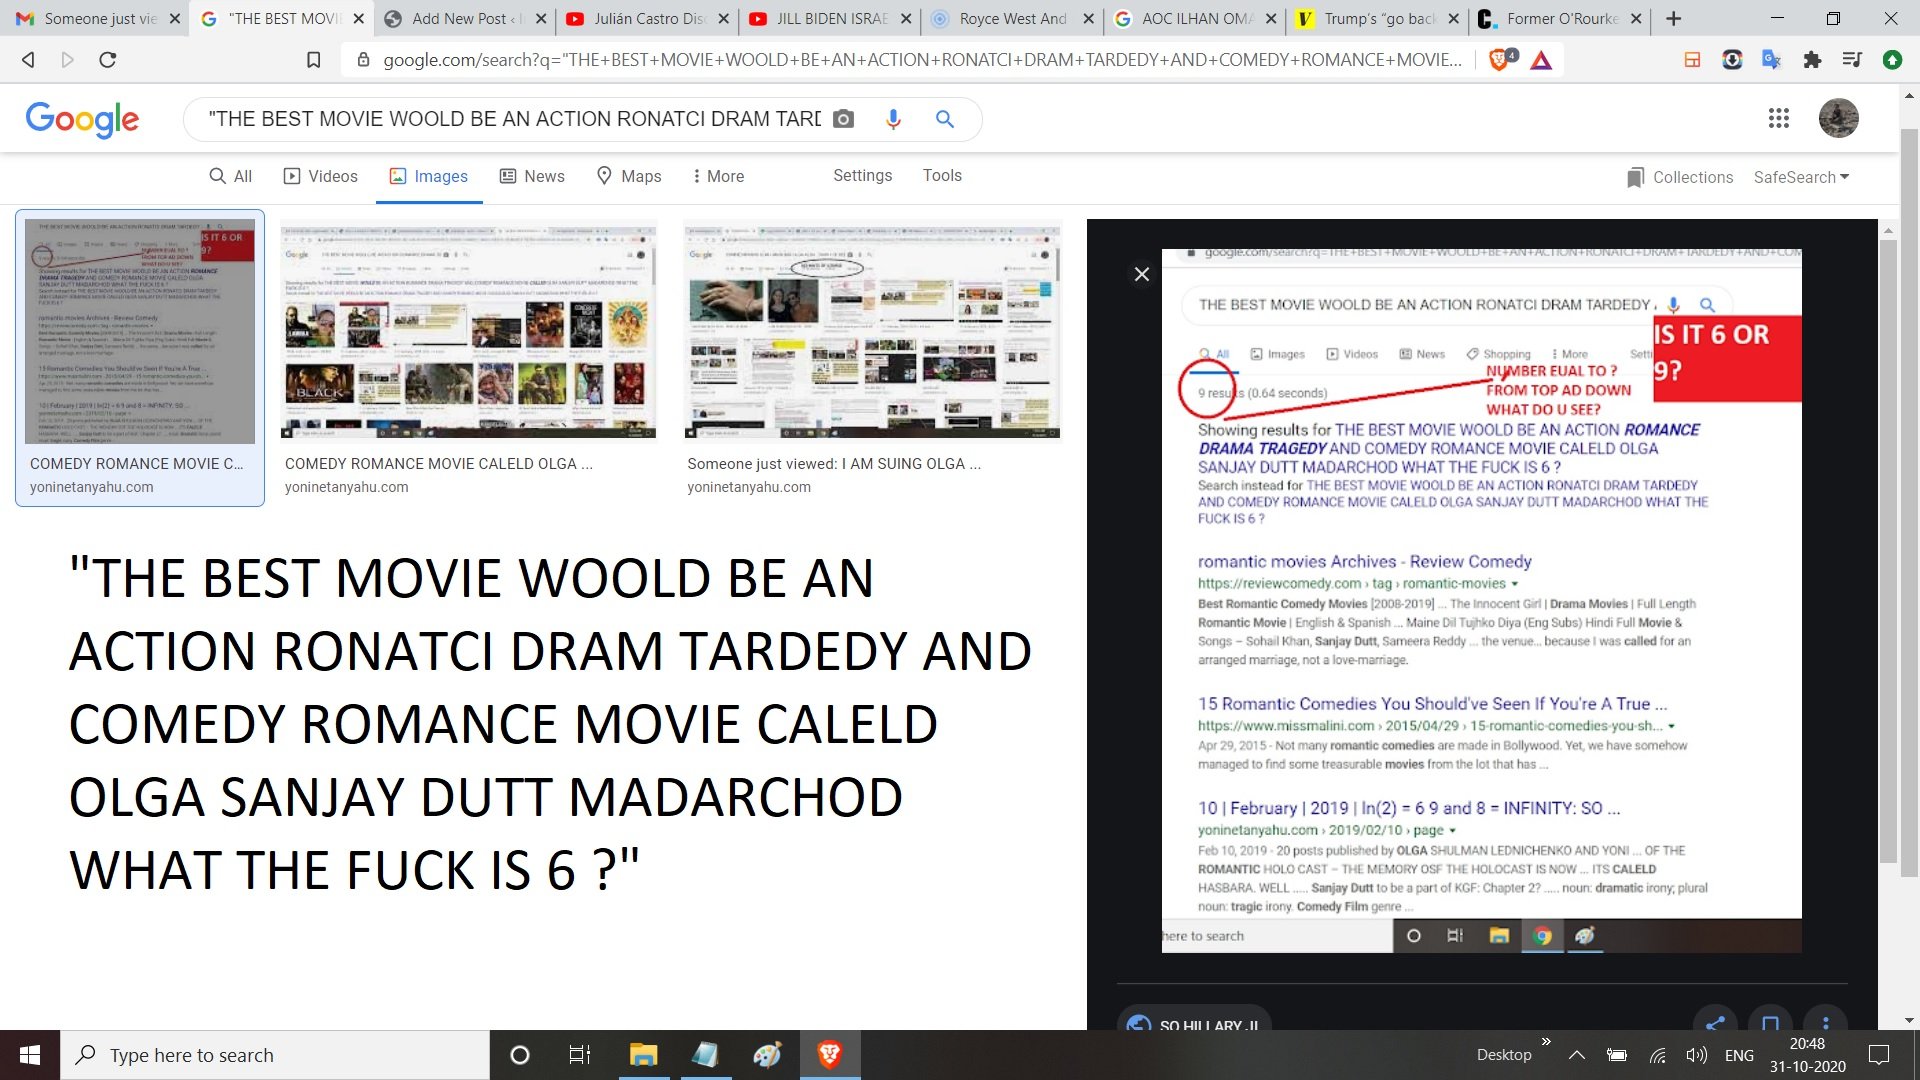 THE BEST MOVIE WOOLD BE AN ACTION RONATCI DRAM TARDEDY AND COMEDY ROMANCE MOVIE CALELD OLGA SANJAY DUTT MADARCHOD WHAT THE FUCK IS 6